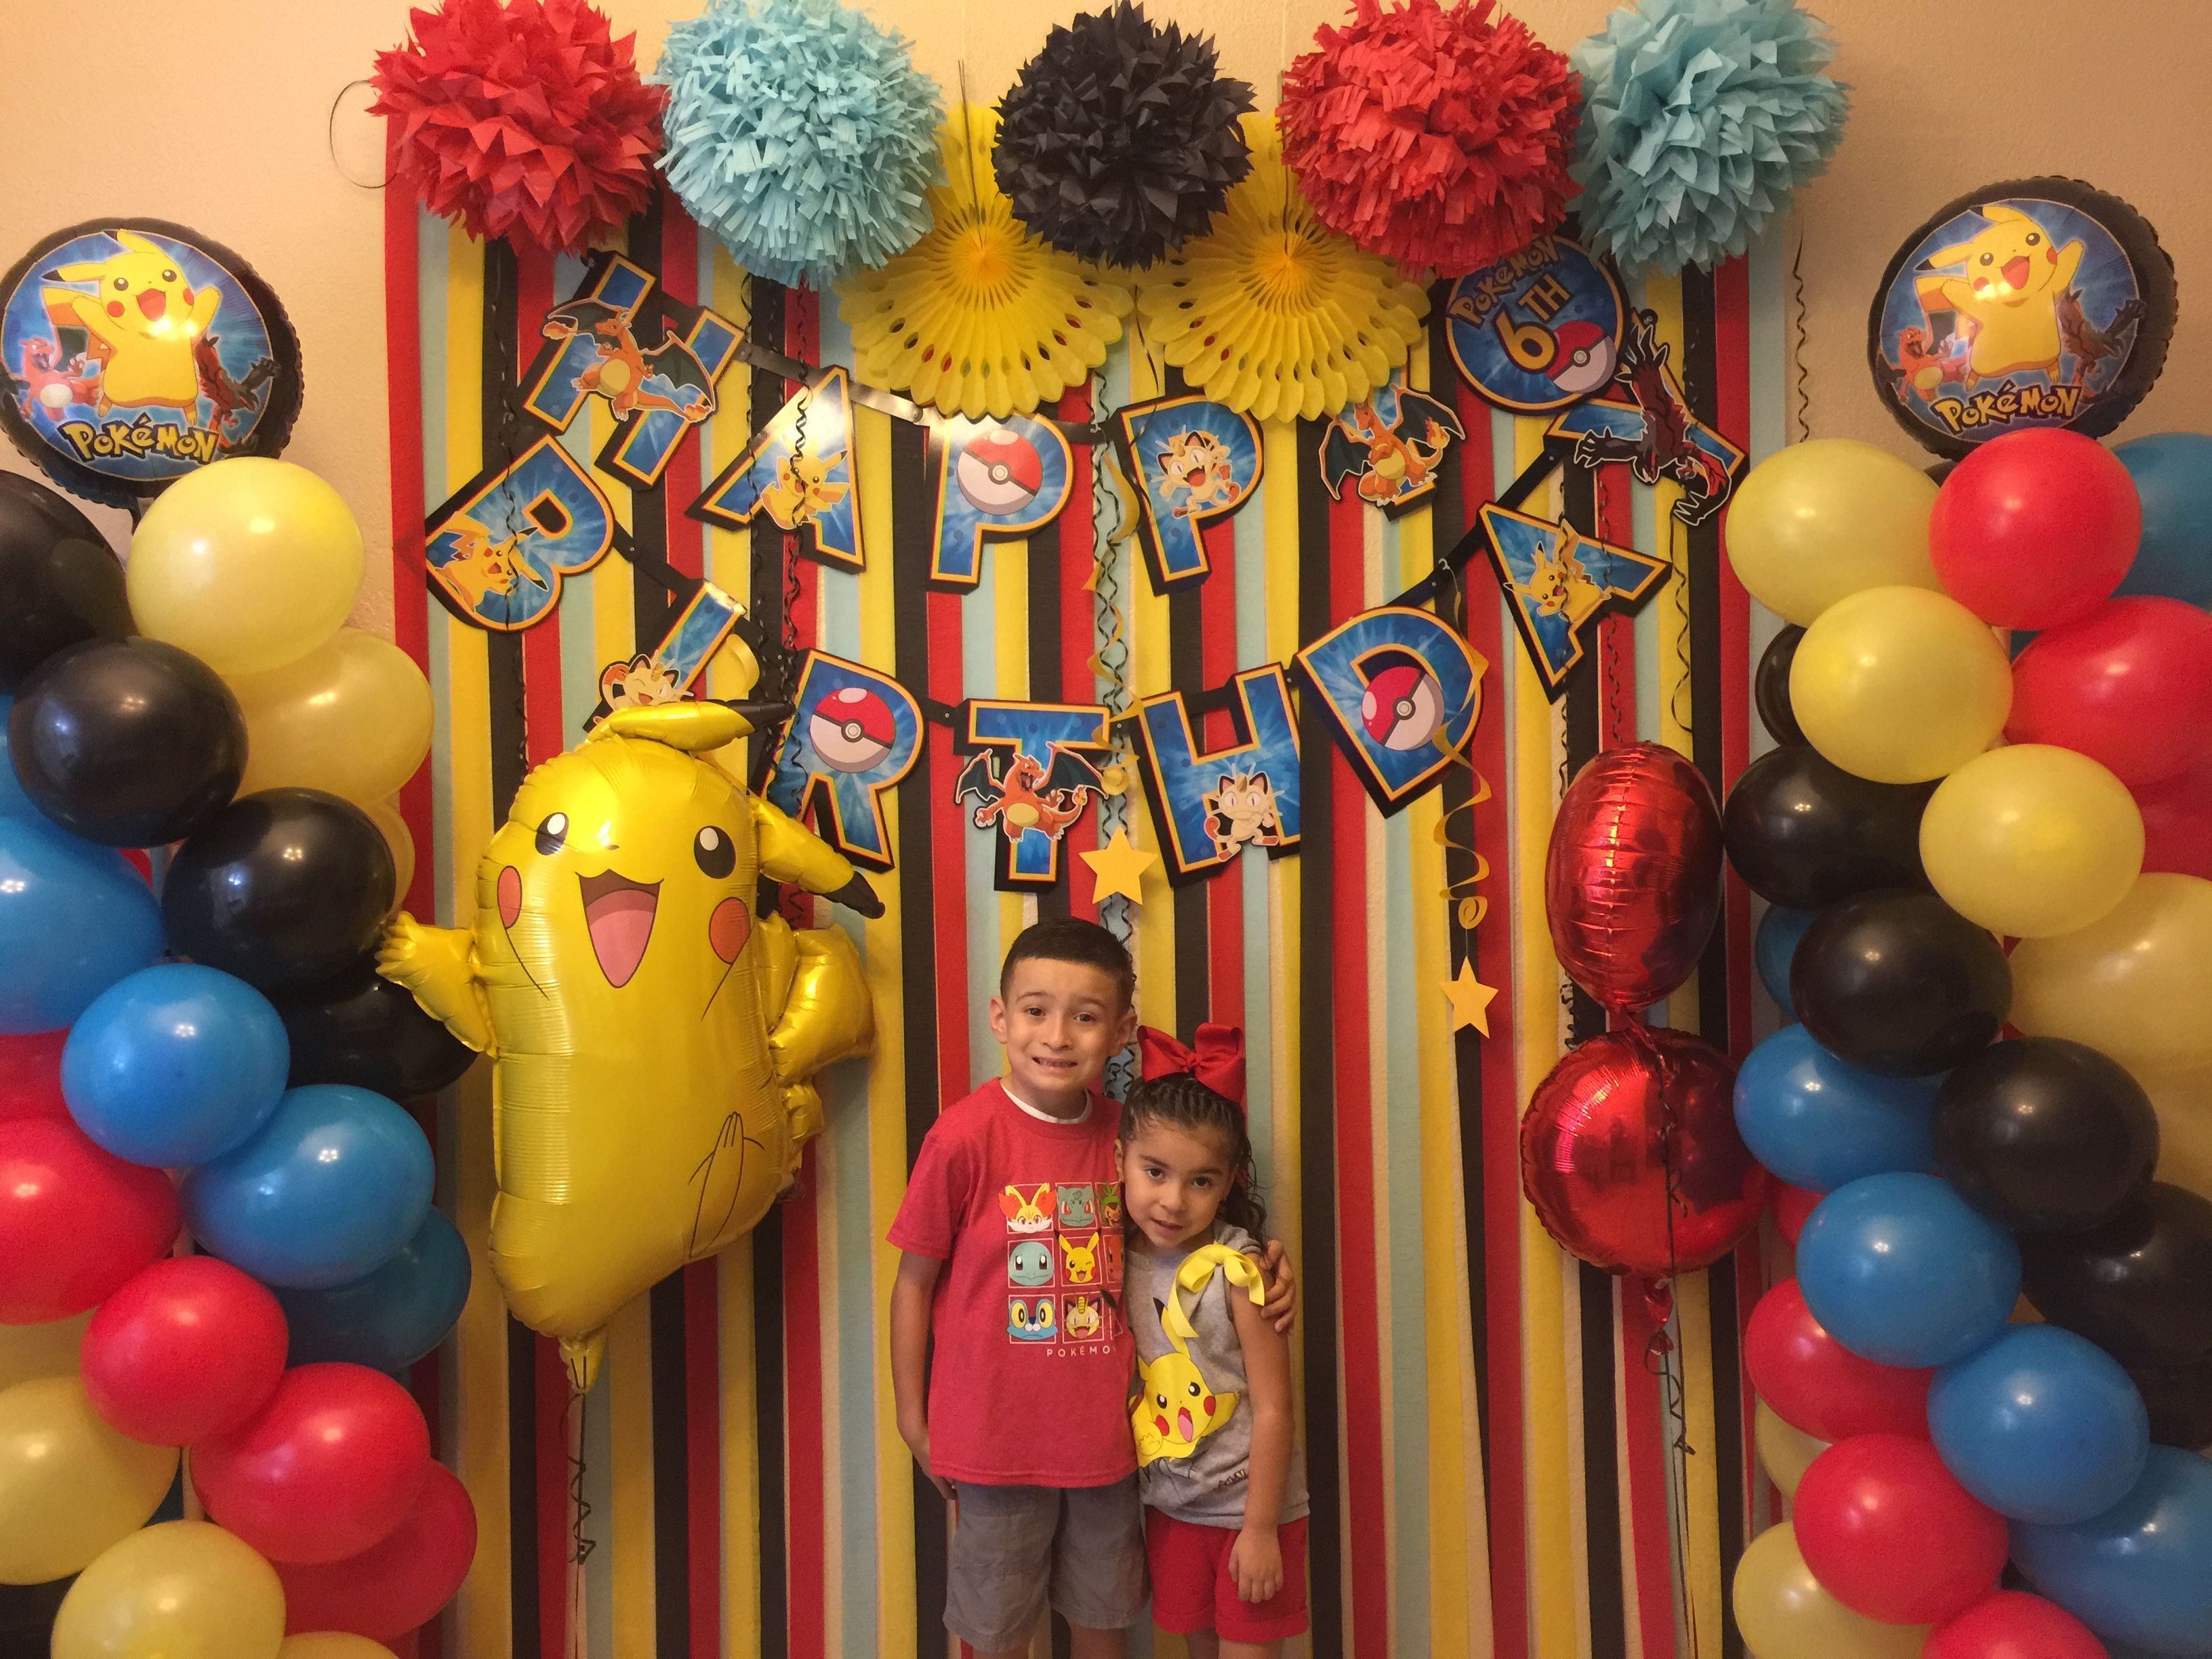 birthday party background themes ; 9710be4f881a6e9c76dbb7121aea5d94